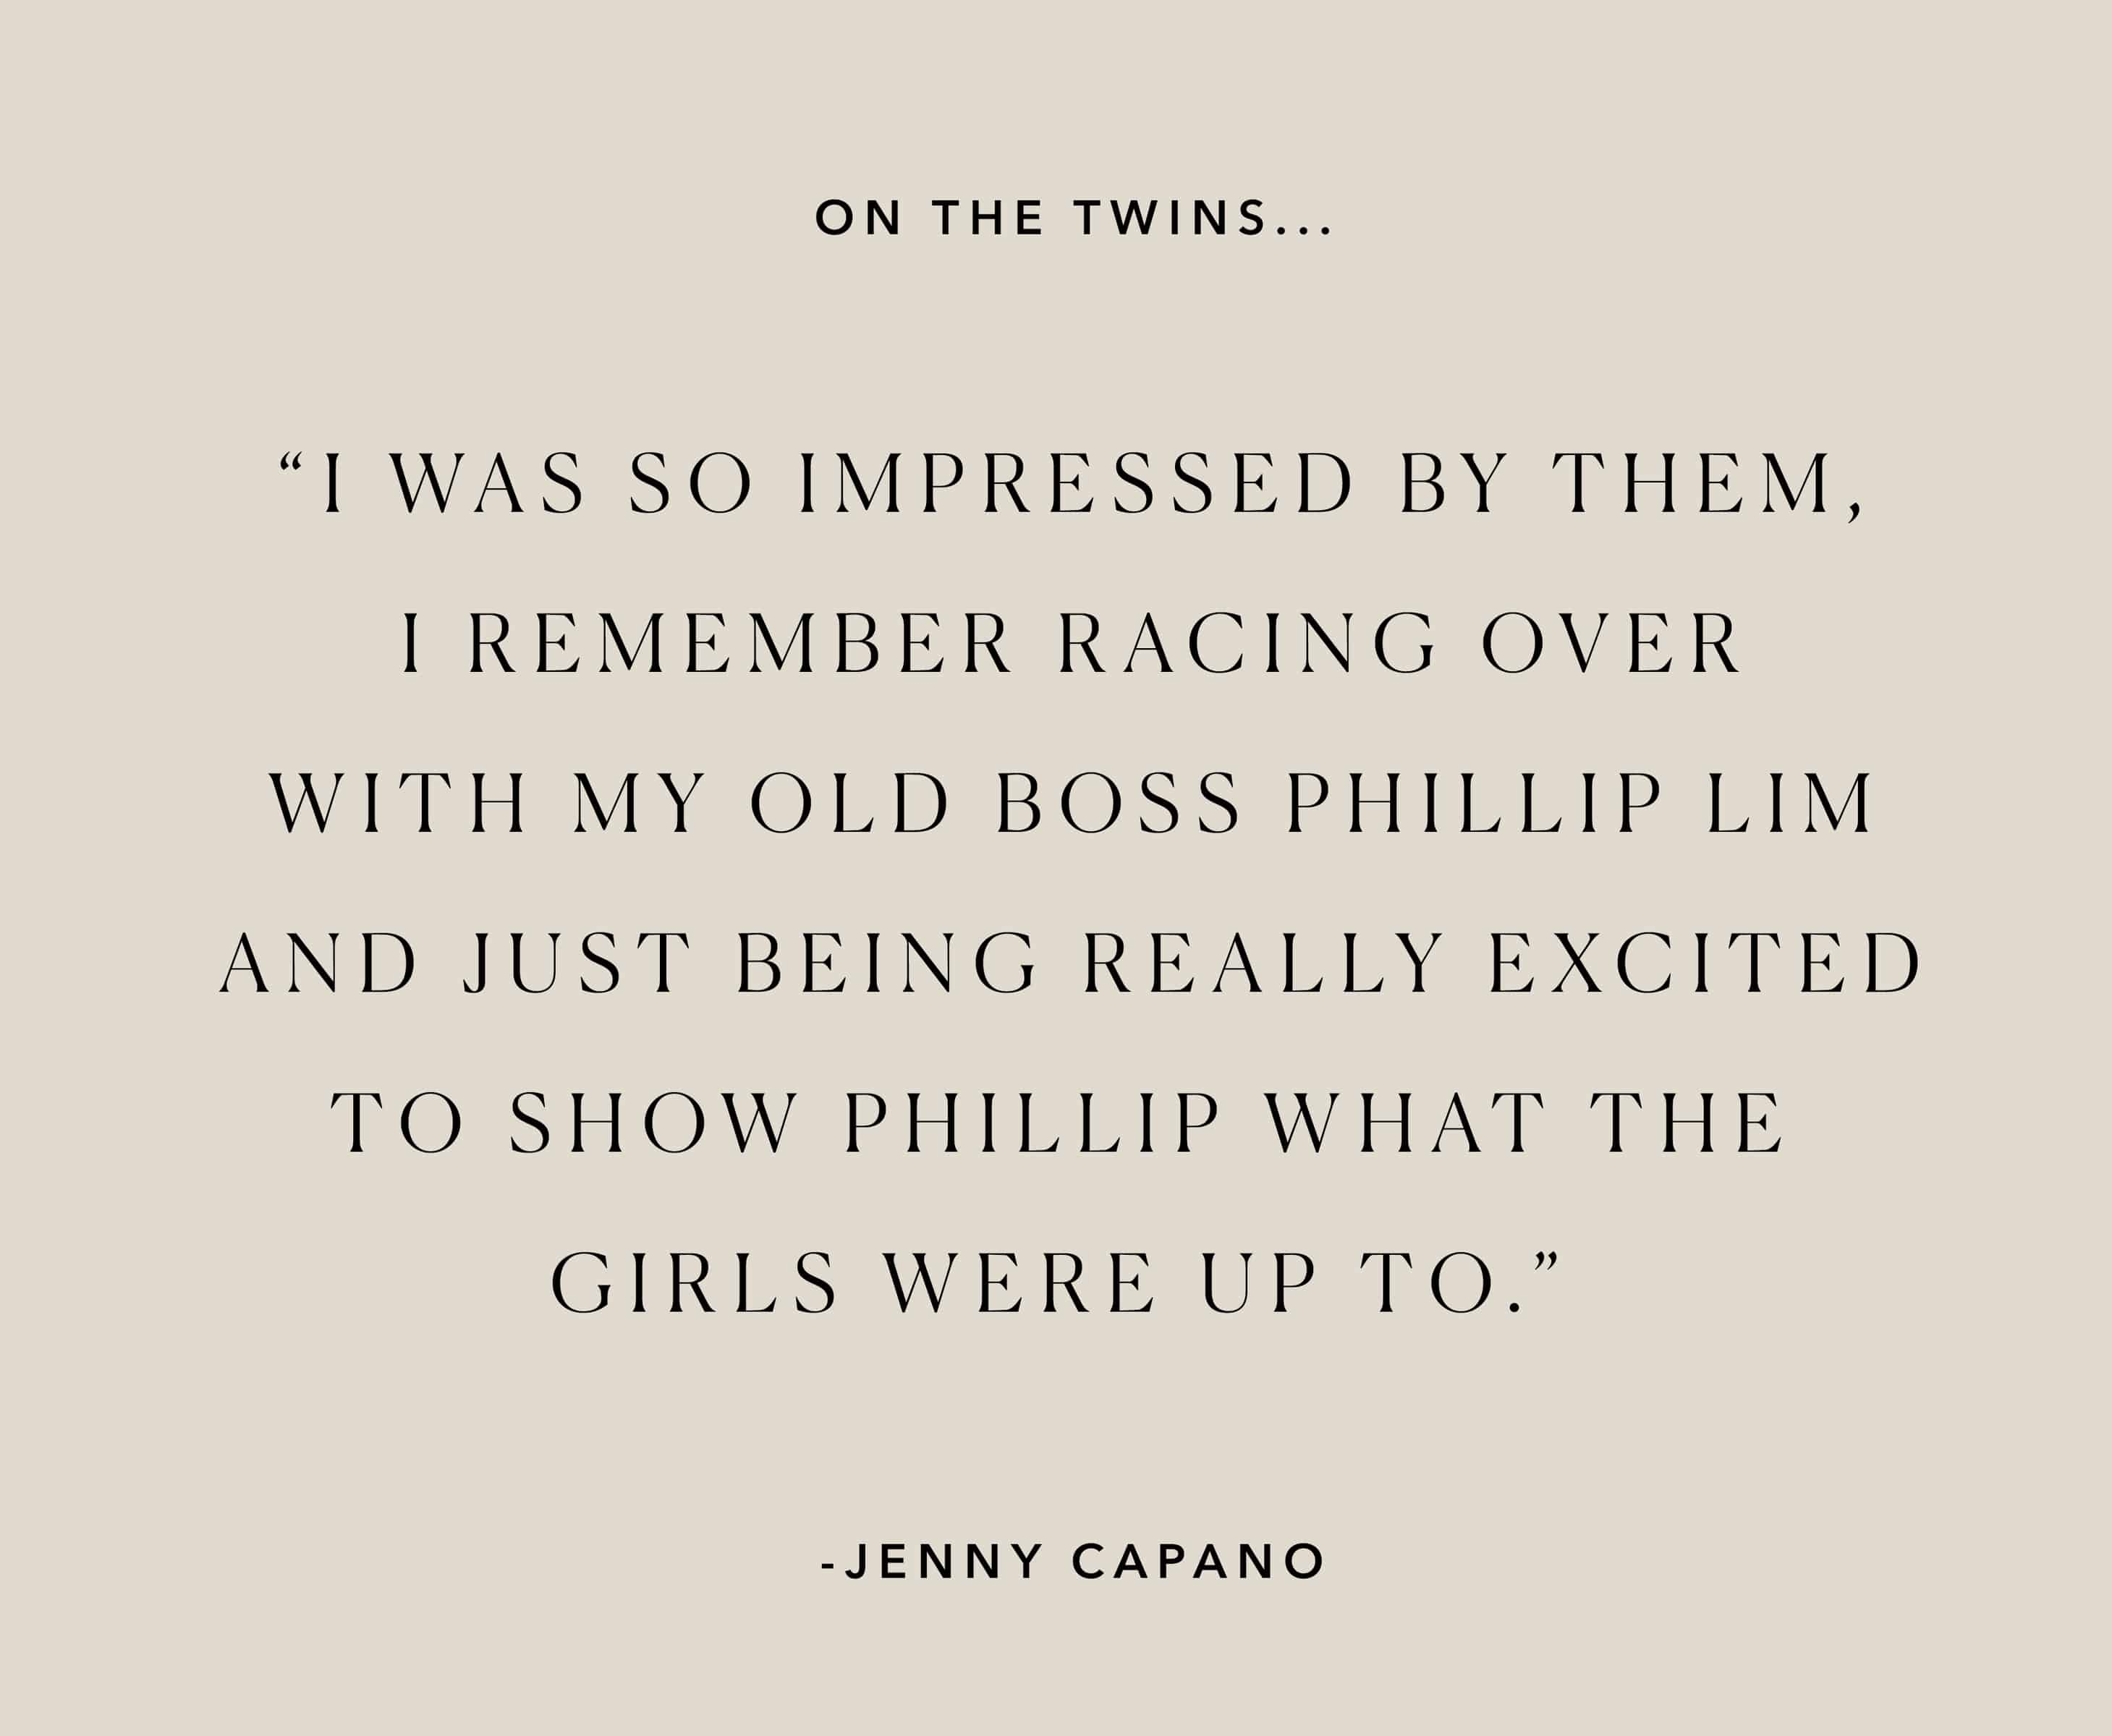 Friends For 10: Jenny Capano of Sacai 21